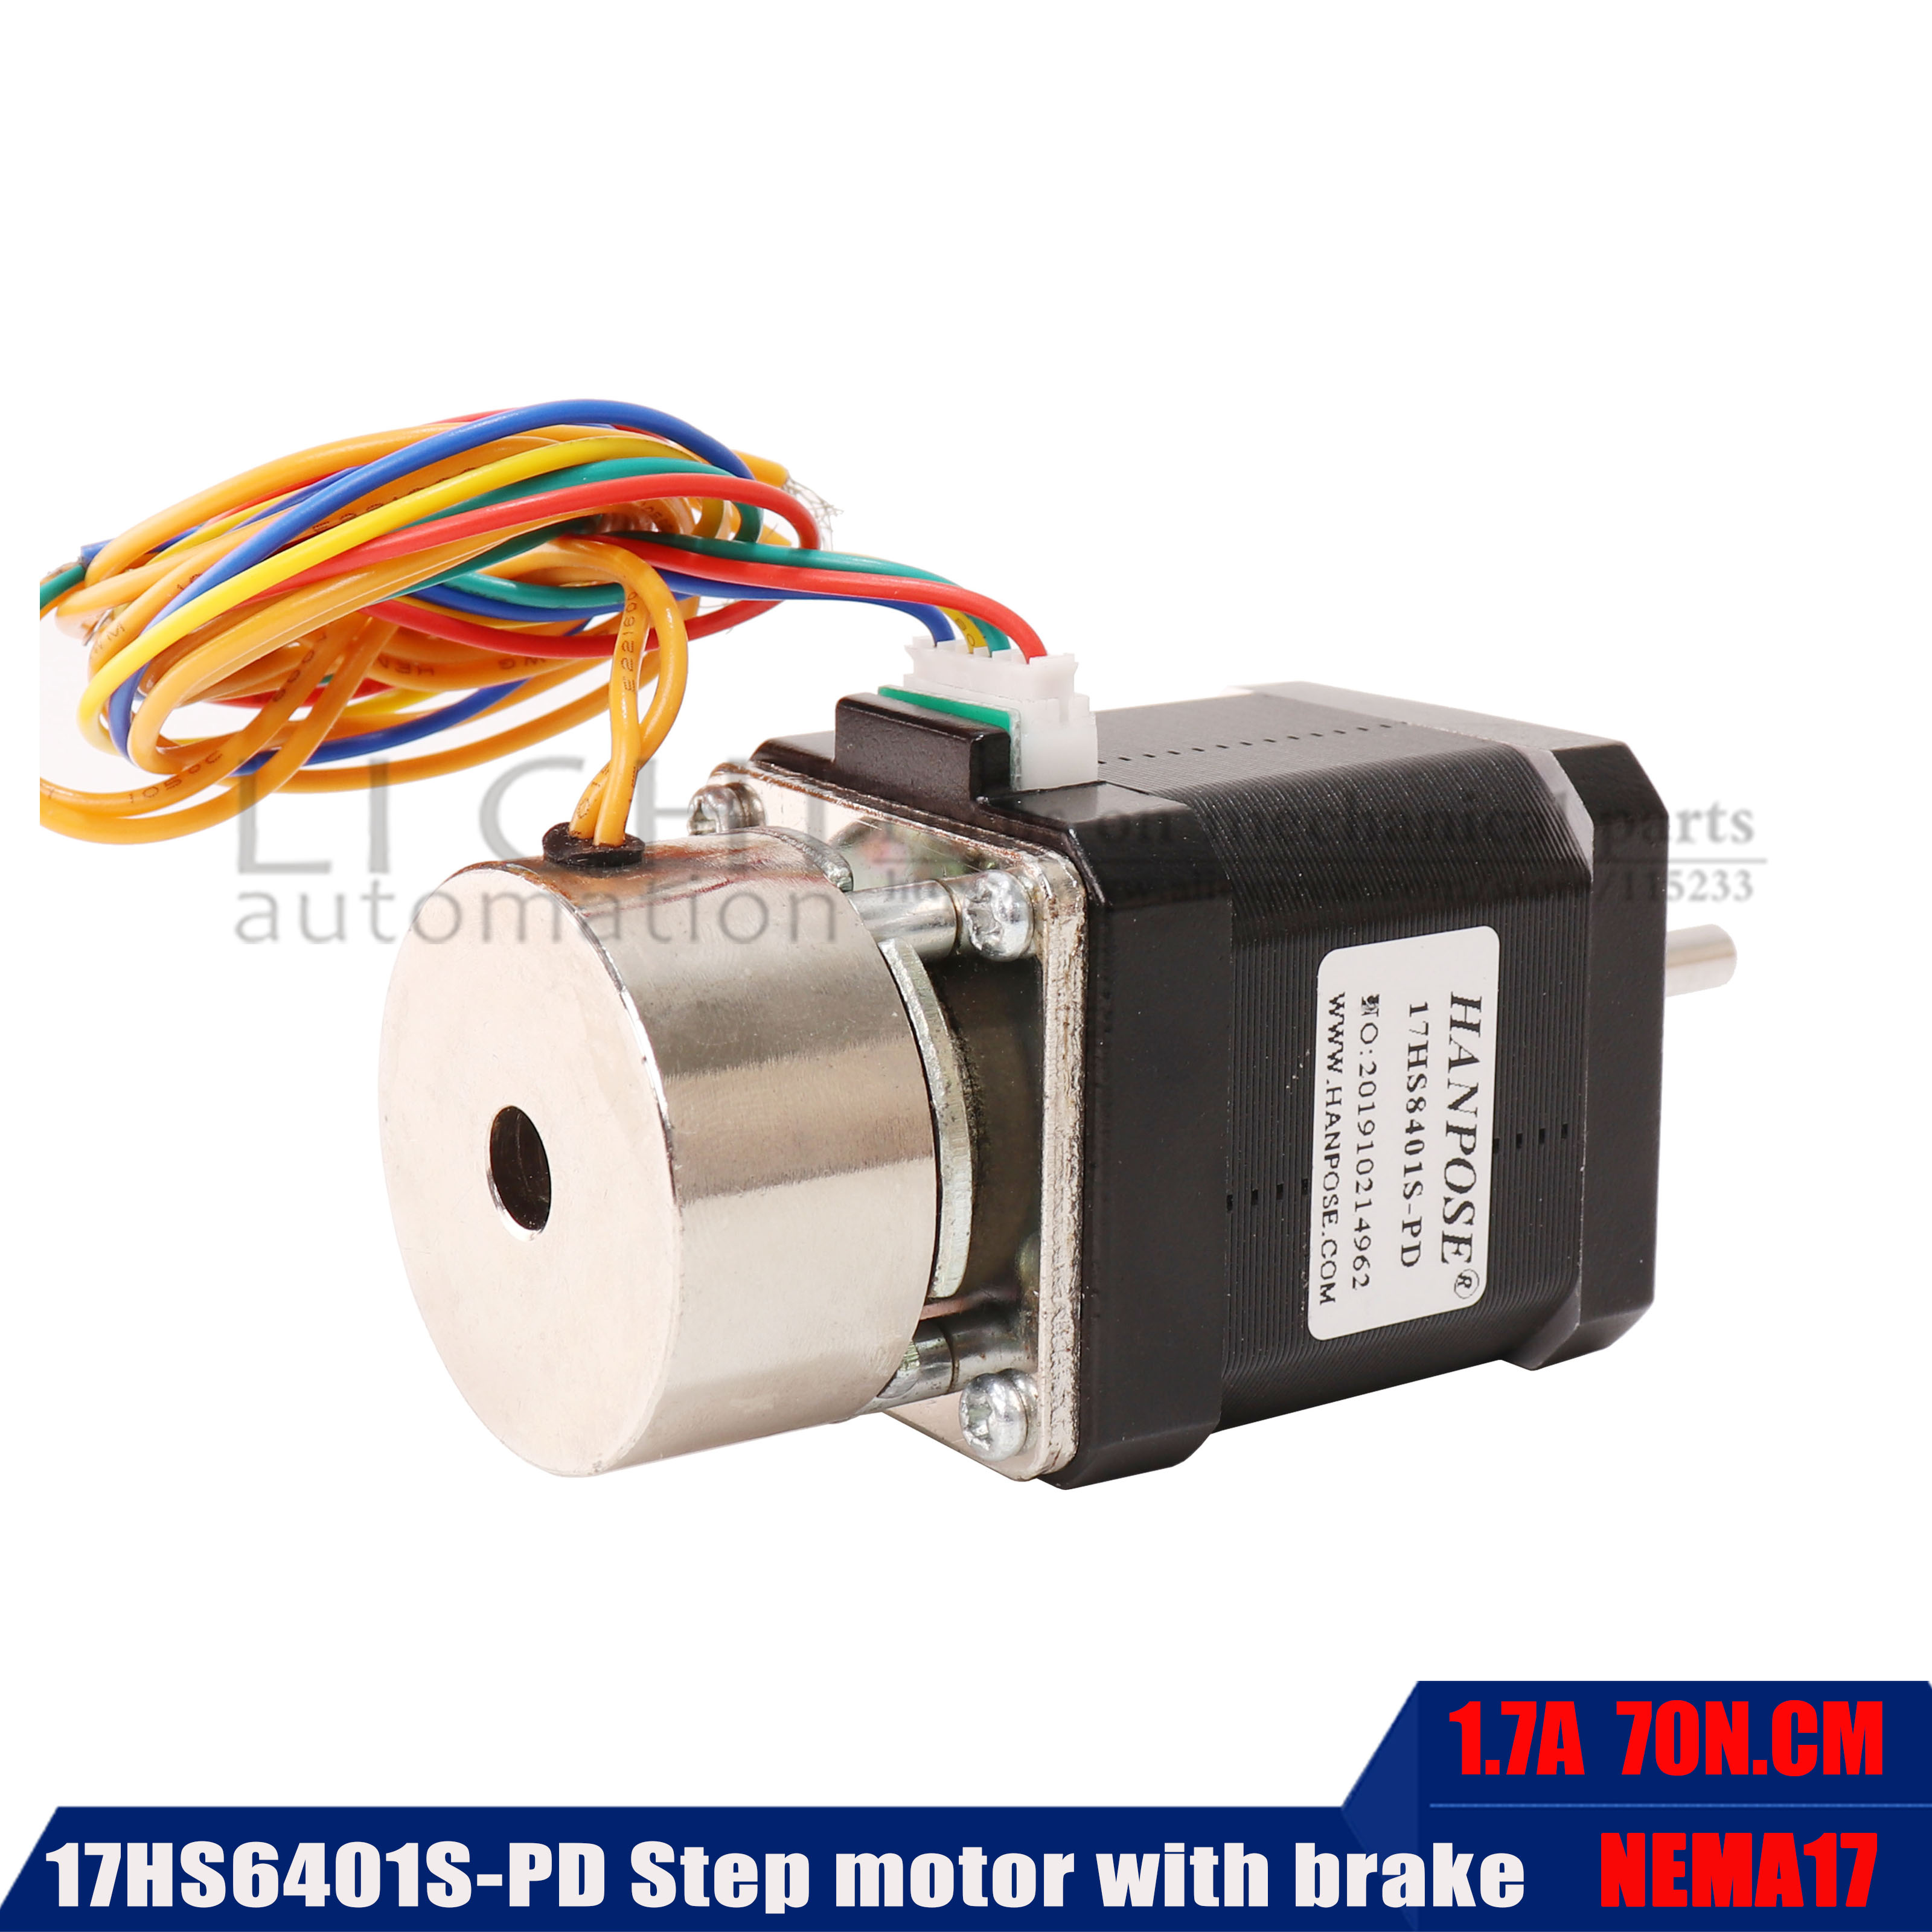 42 Stepper Motor 17hs6401 With Brake 70ncm Large Torque 42x60mm With Band Brake Motor Nema17 For 3D Printer